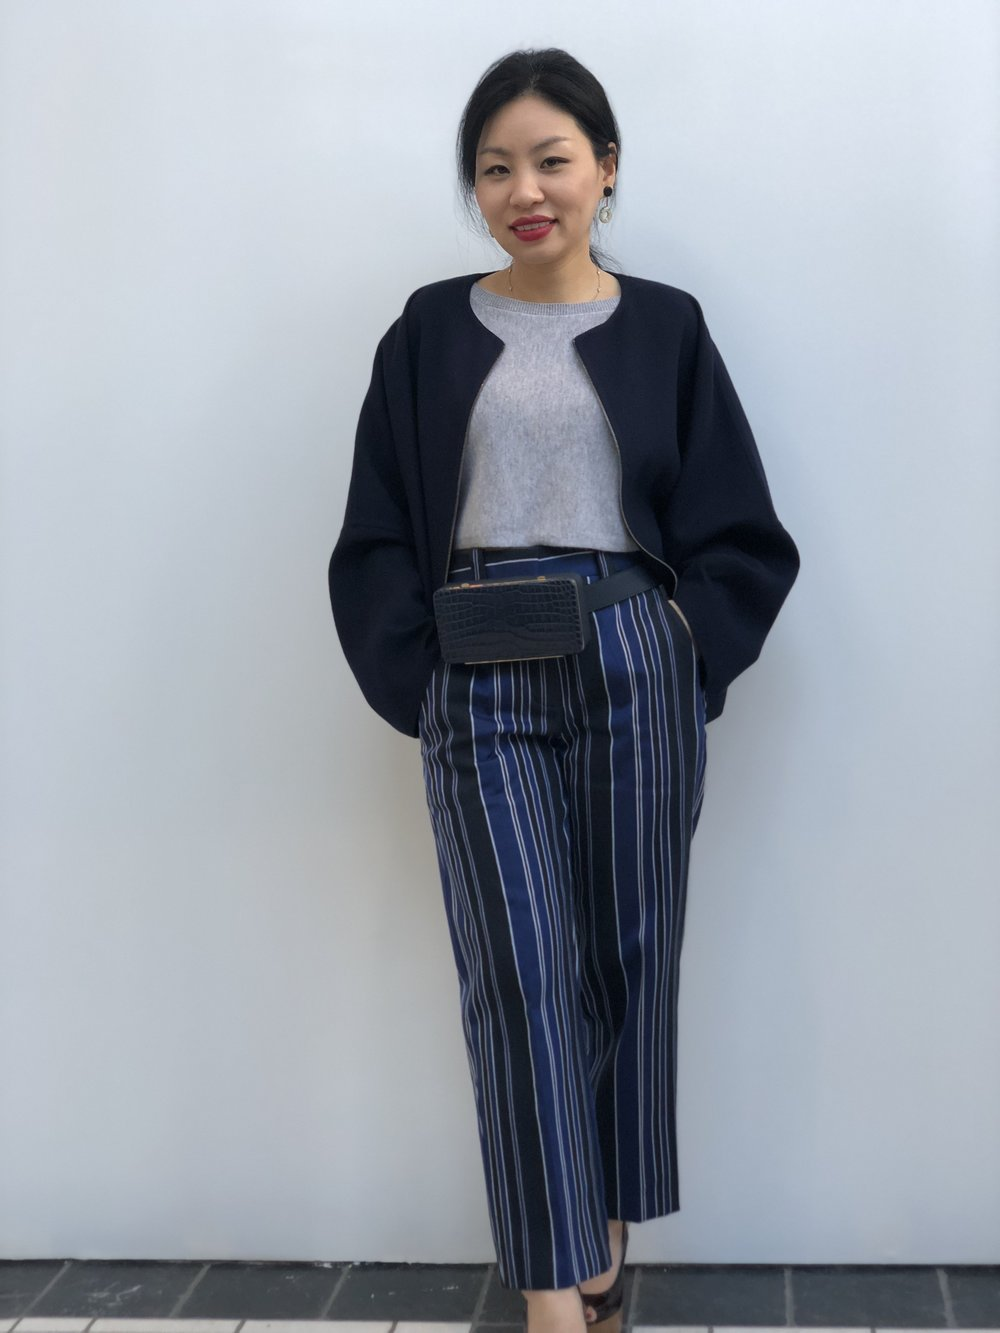 Yura wears a Fabiana Filippi jacket with Erika Cavallini pants . . .